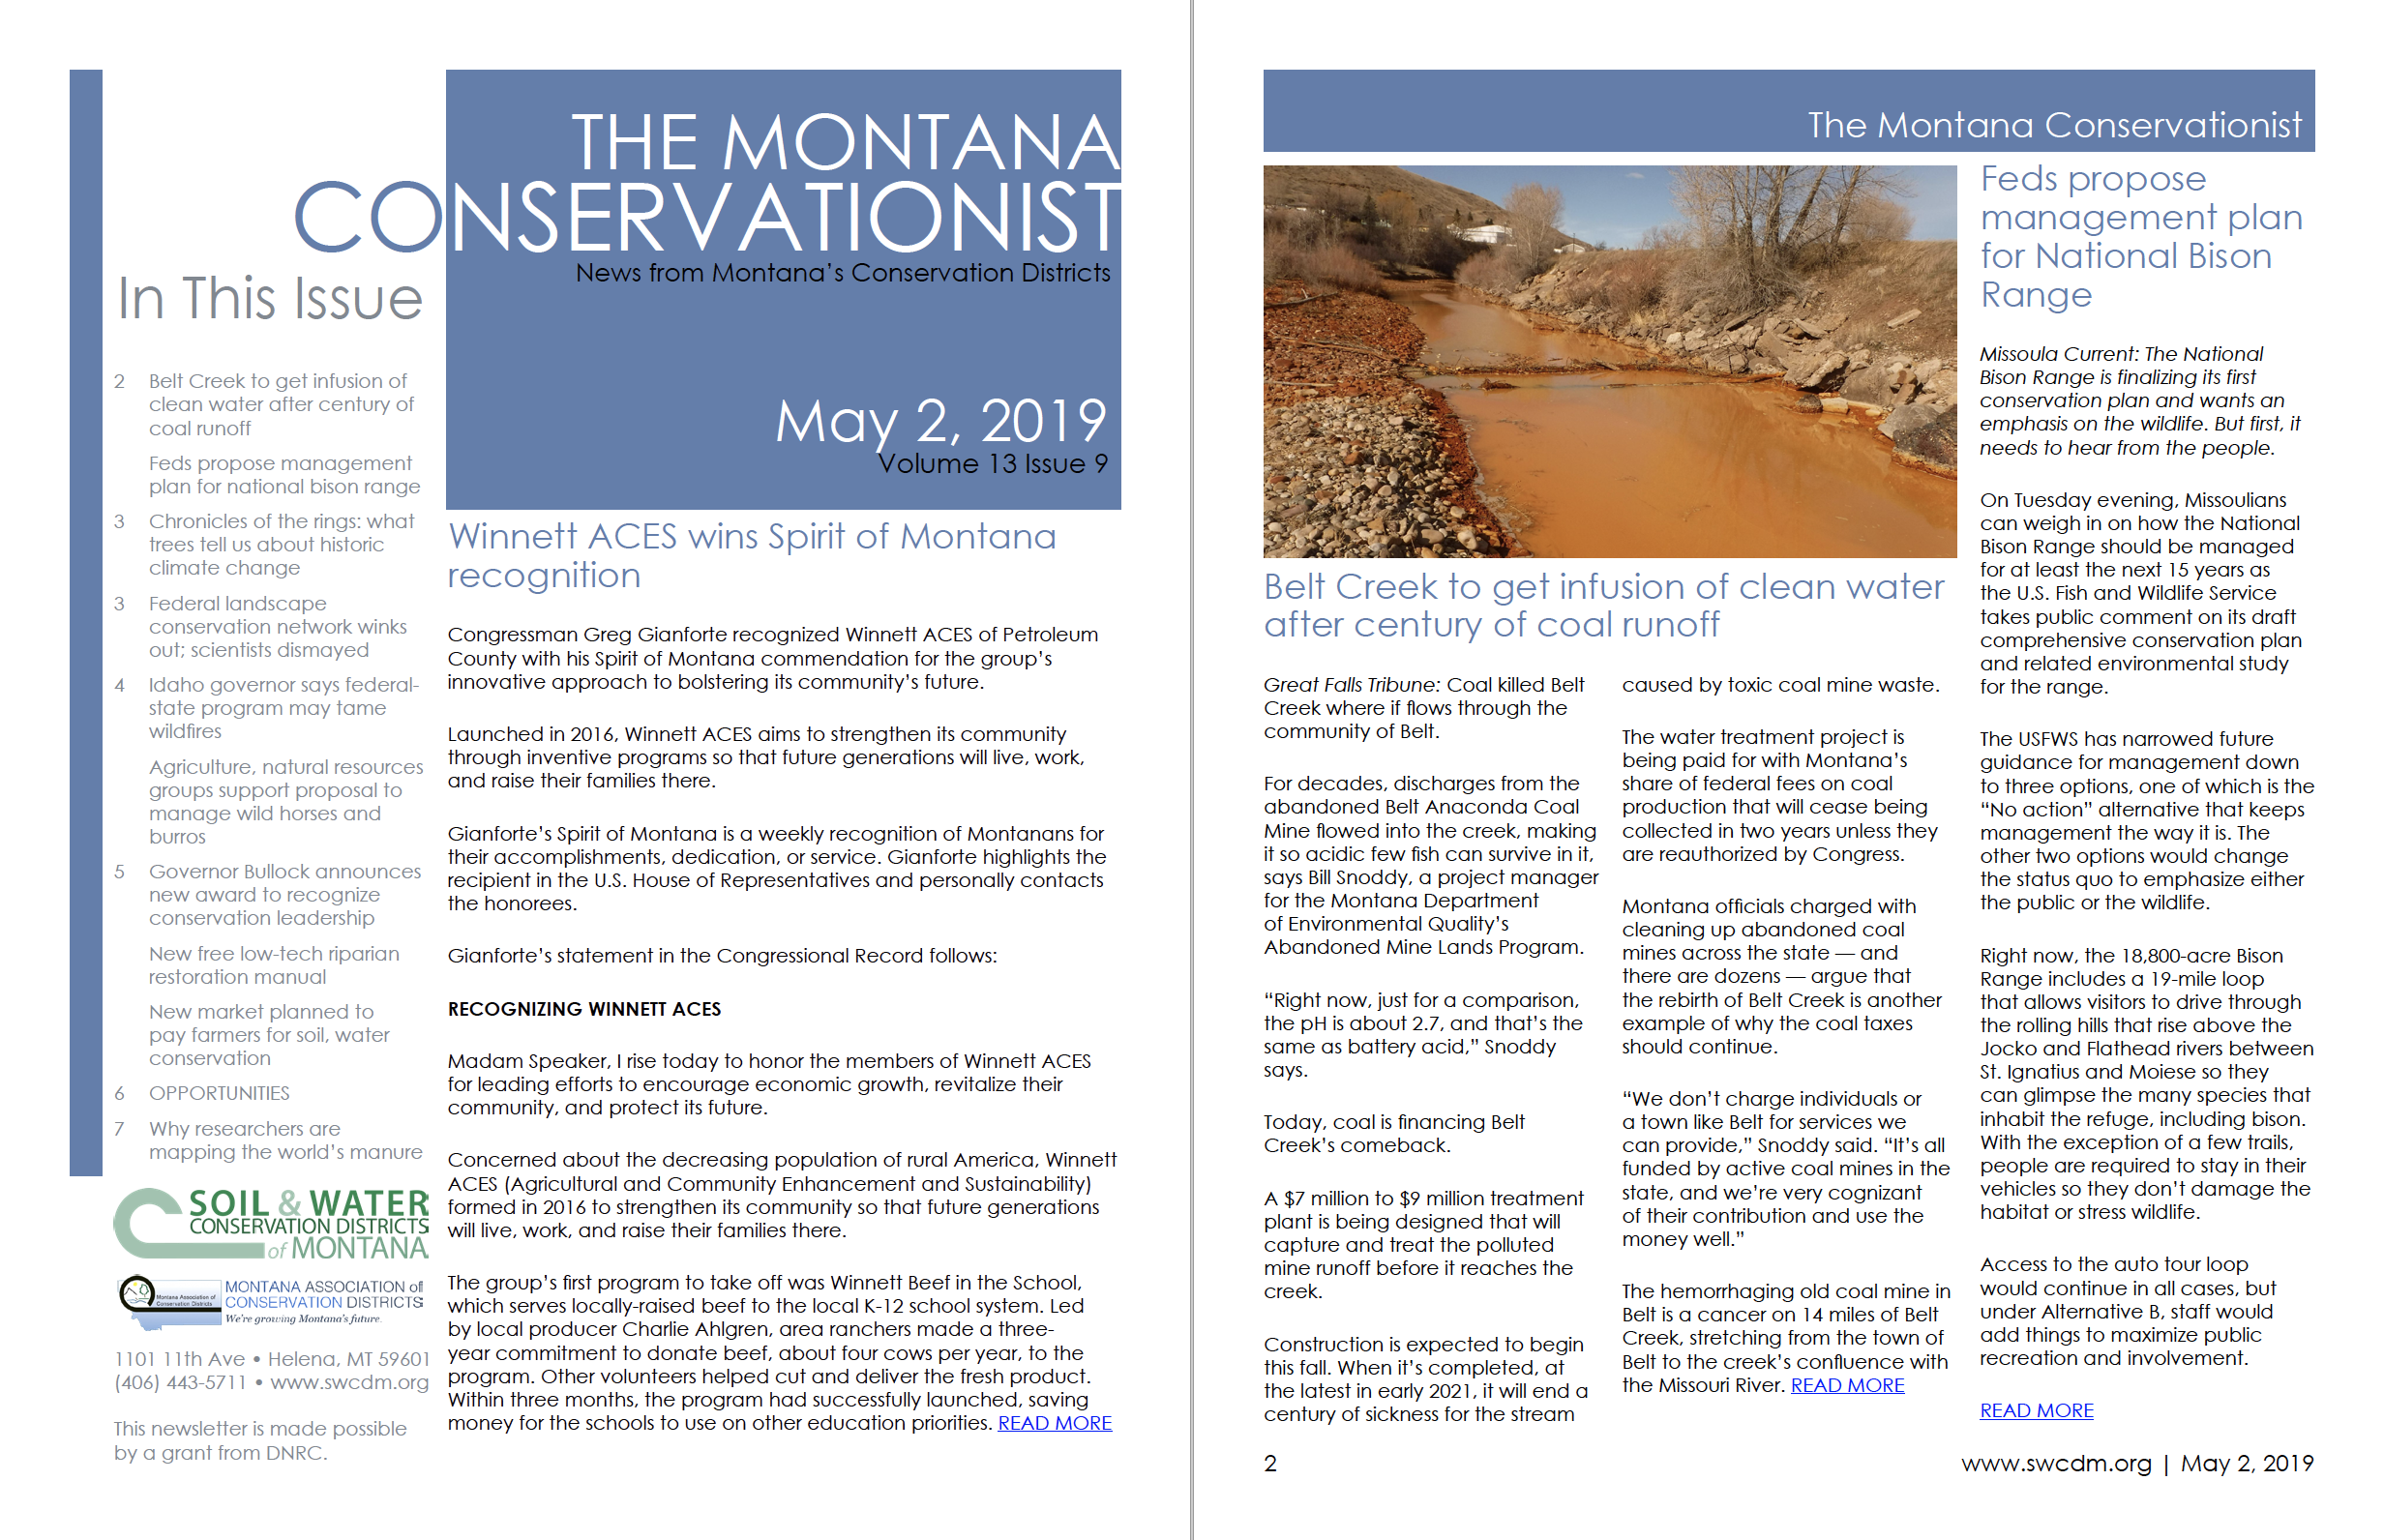 The Montana Conservationist May 2